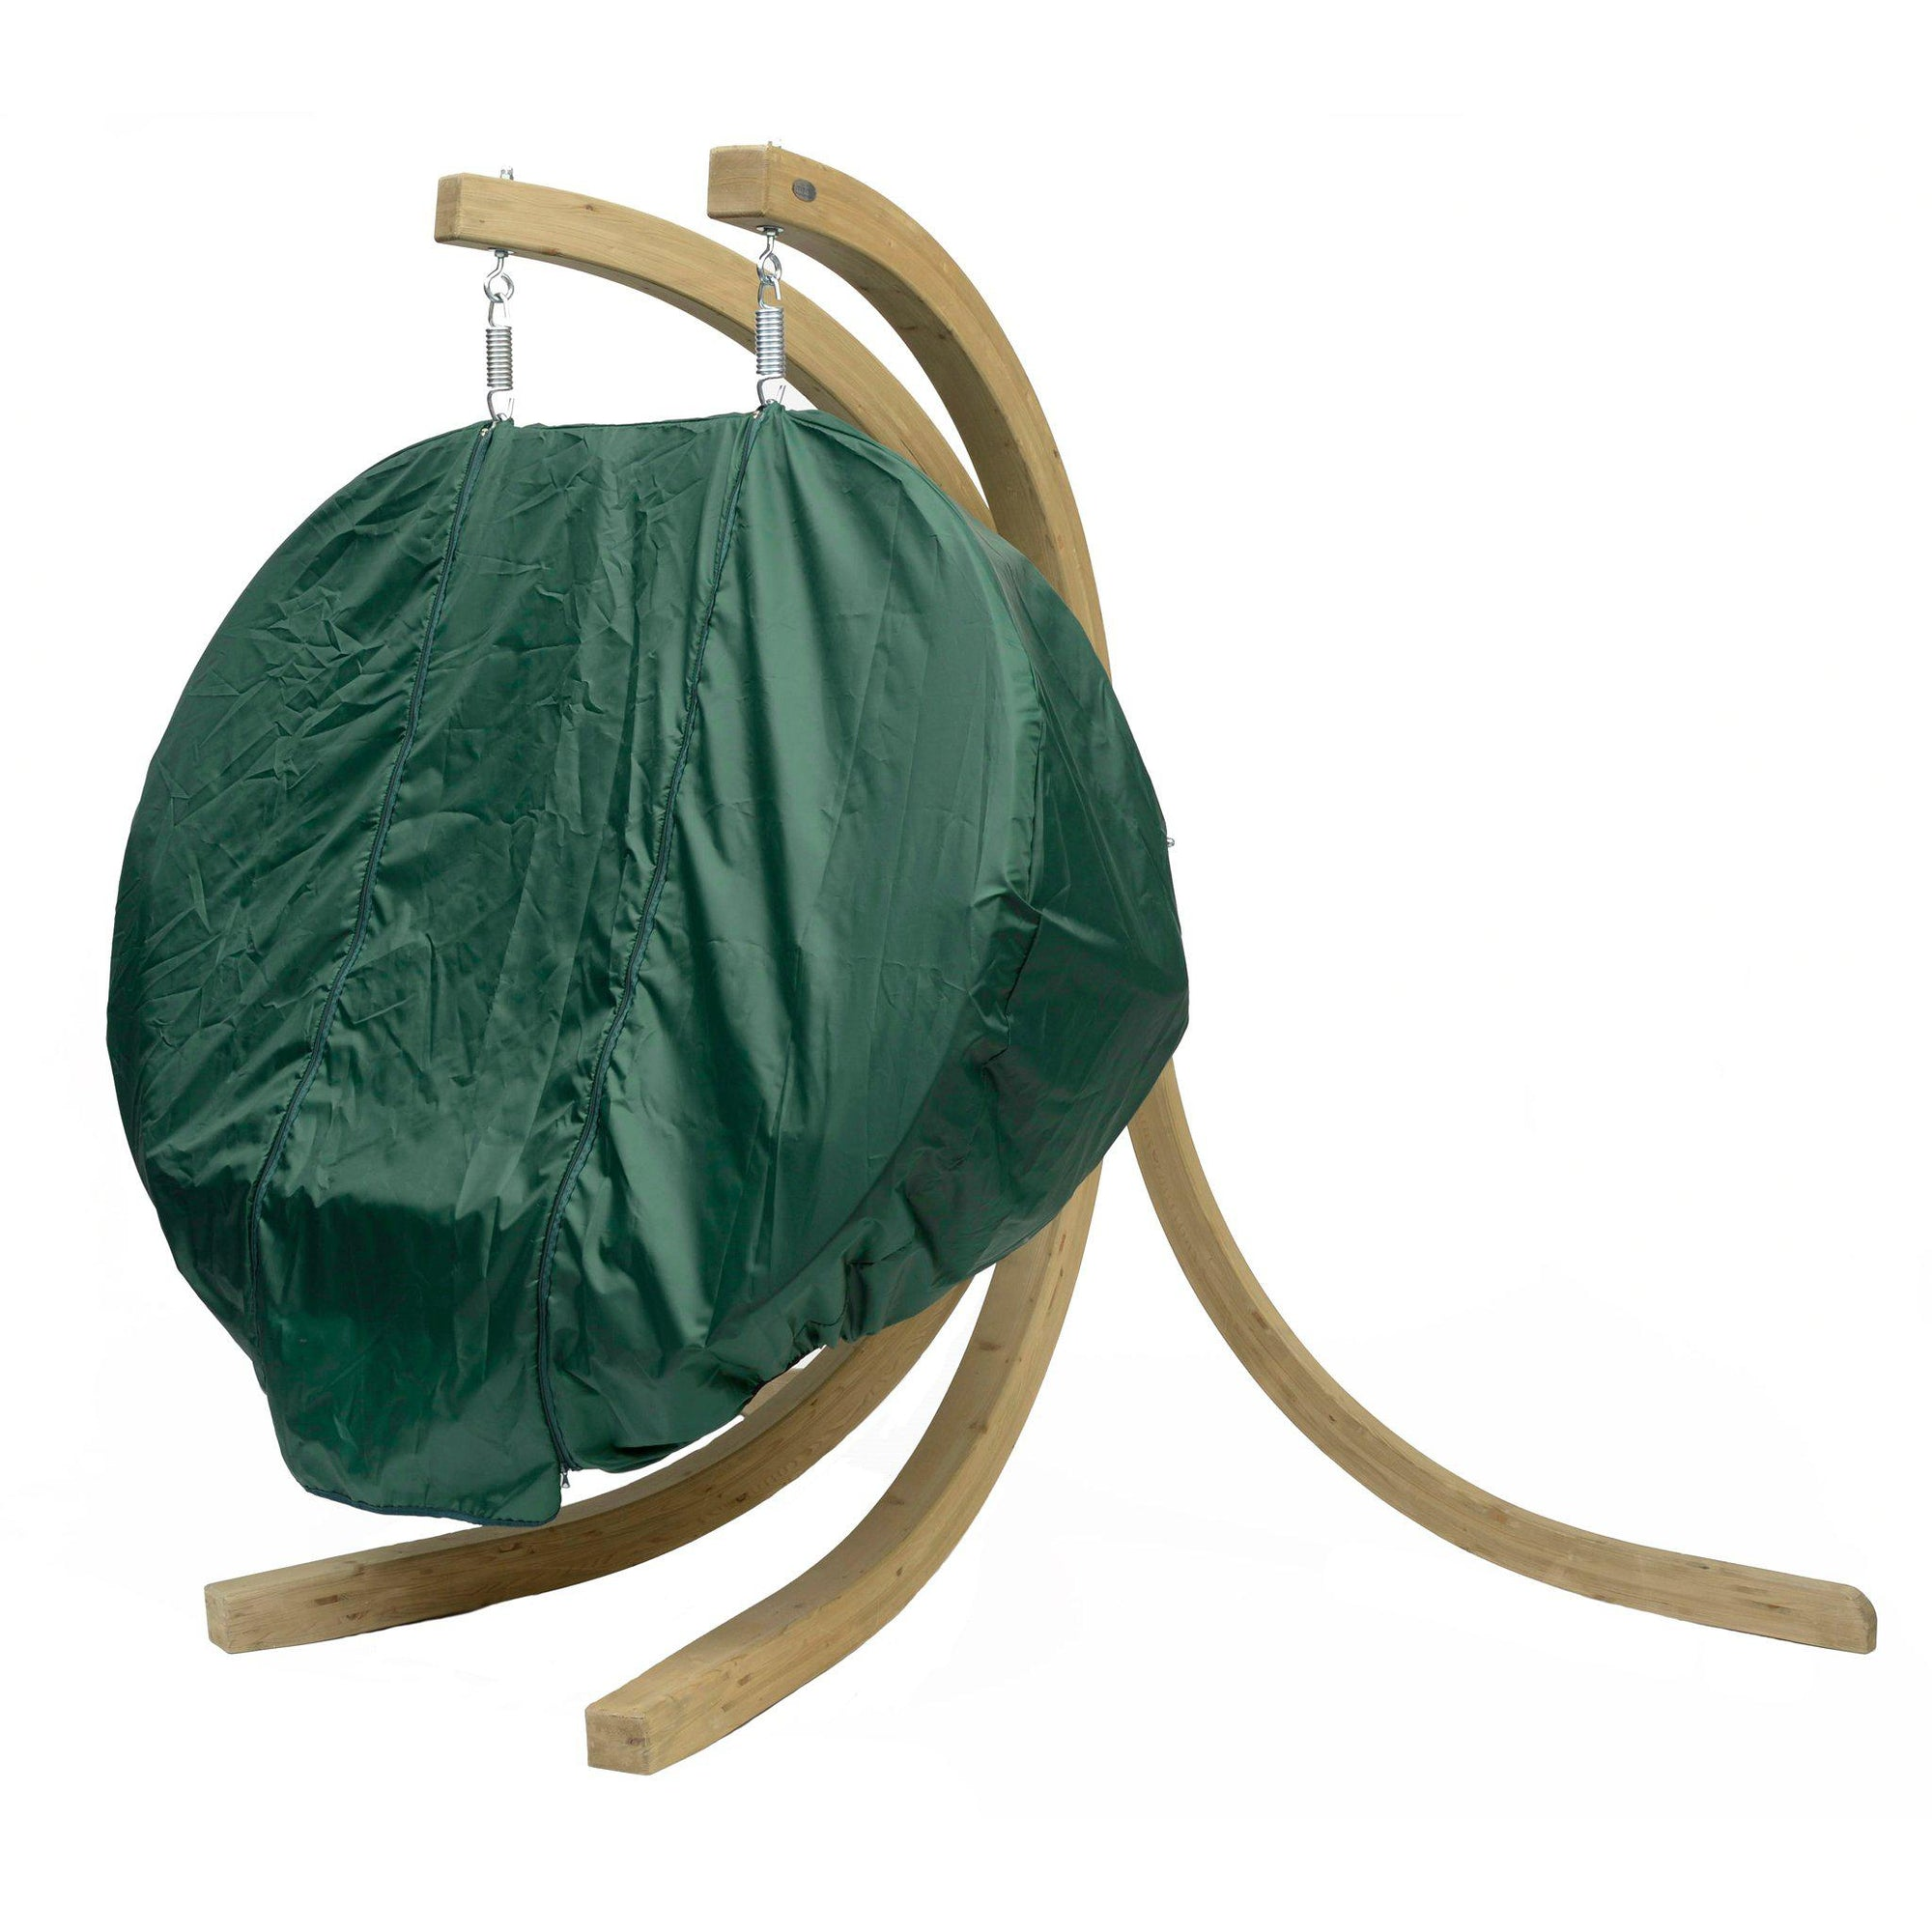 Globo Royal Exterior Weather Cover, from Byer of Maine